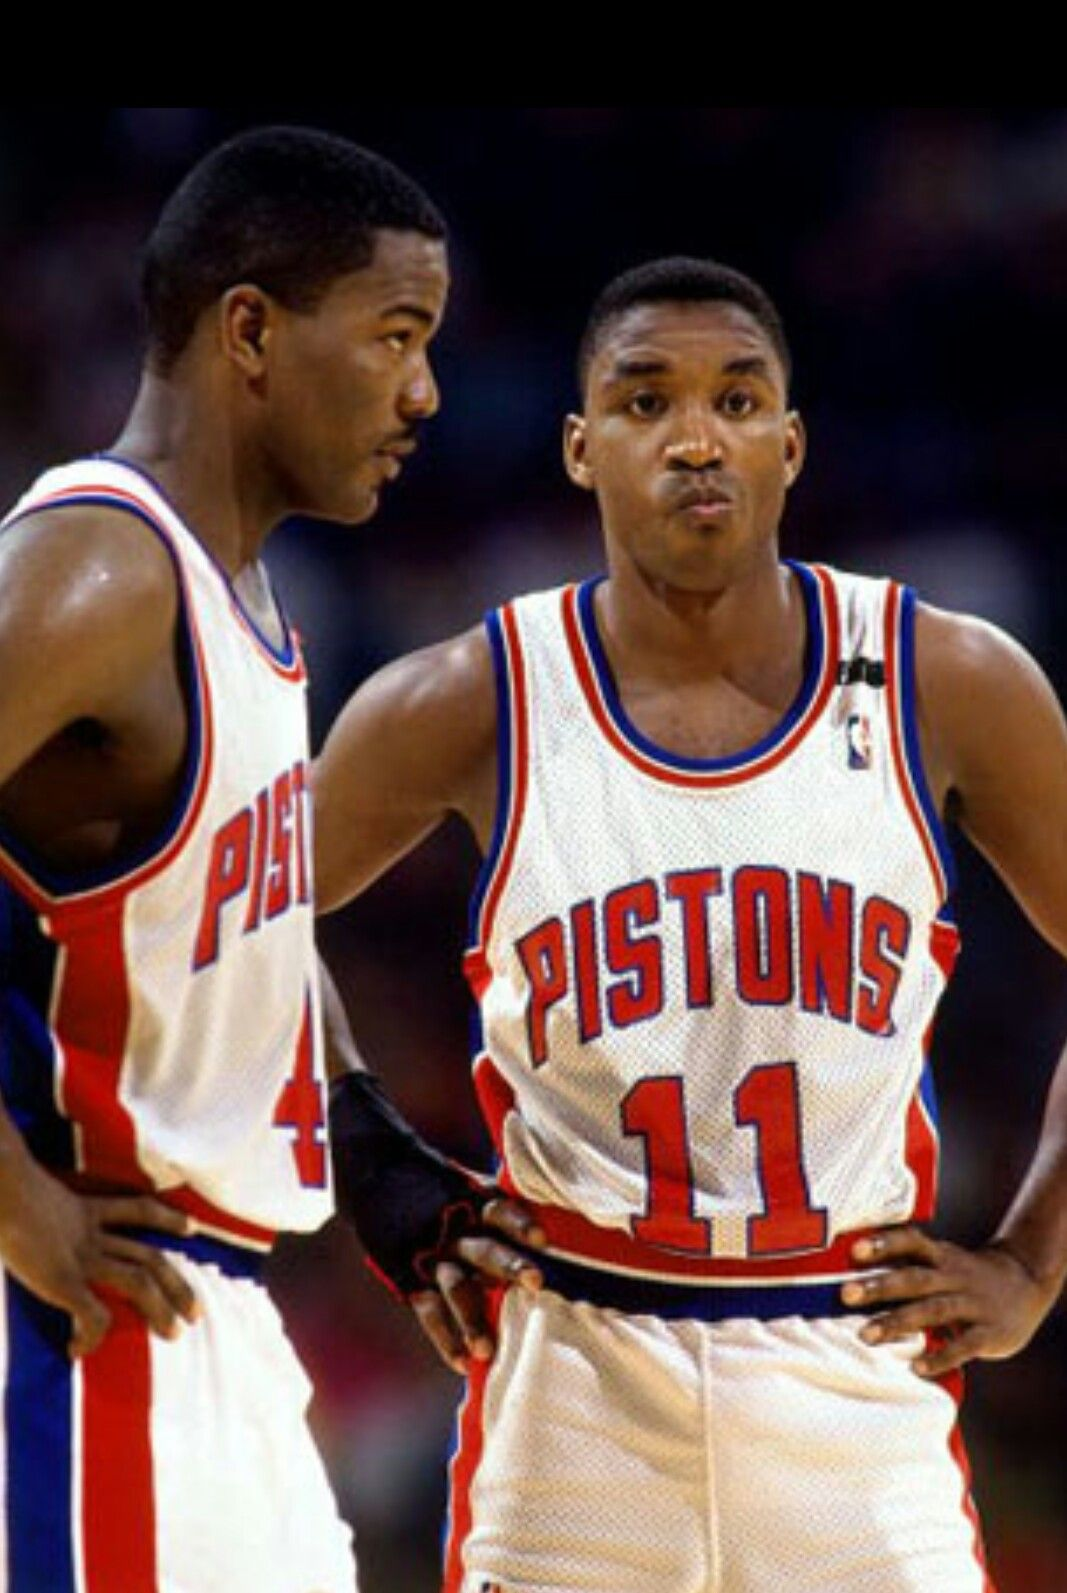 b30de13a6 Dumars Thomas...Bad Boys Pistons